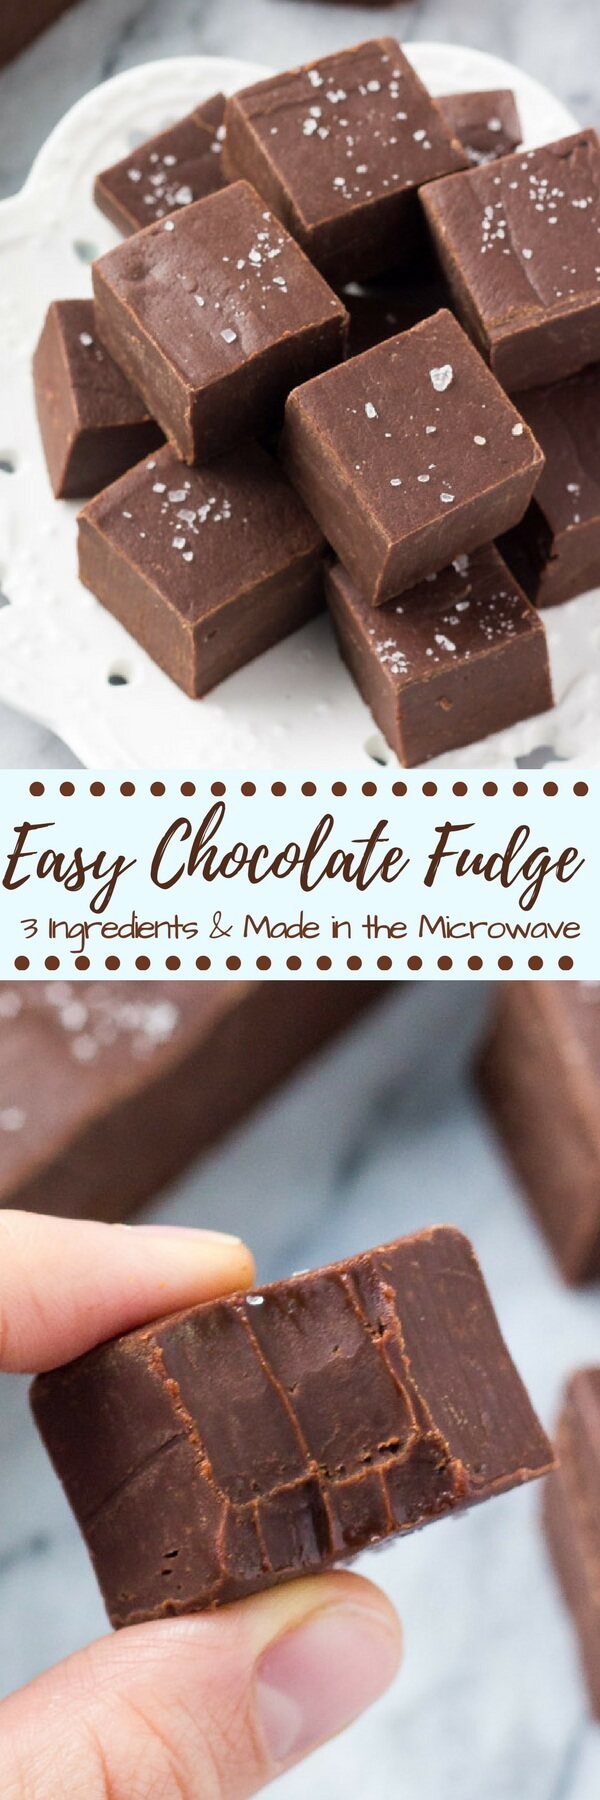 This easy fudge recipe makes smooth, creamy, delicious chocolate fudge every time. It only uses 3 ingredients and you can make it in the microwave or on the stove. #fudge #easyfudge #chocolatefudge